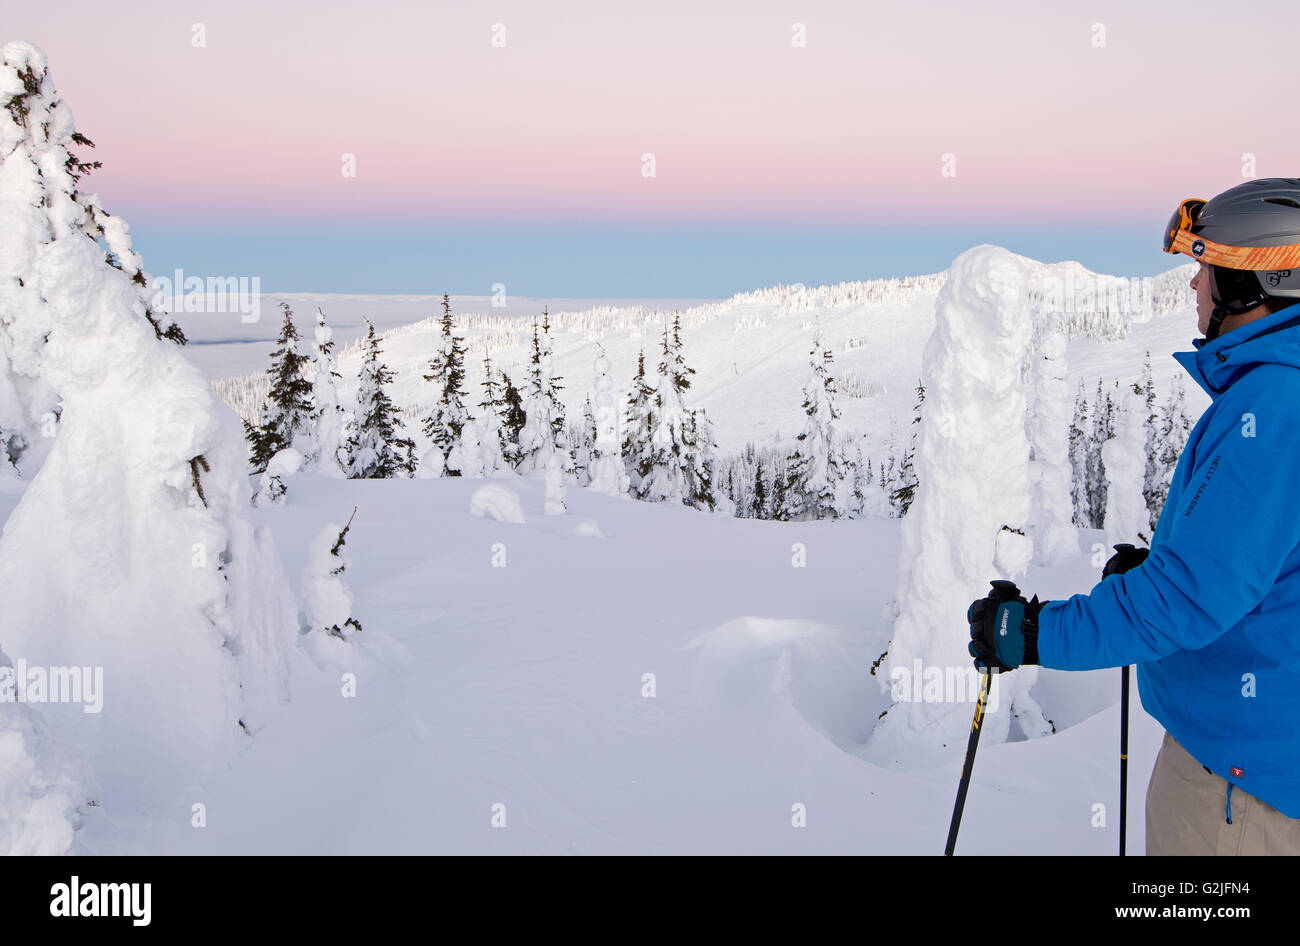 A skier among snow ghosts surveys beautiful landscape before sunrise top Sun Peaks Resort Thompson Okangan region - Stock Image